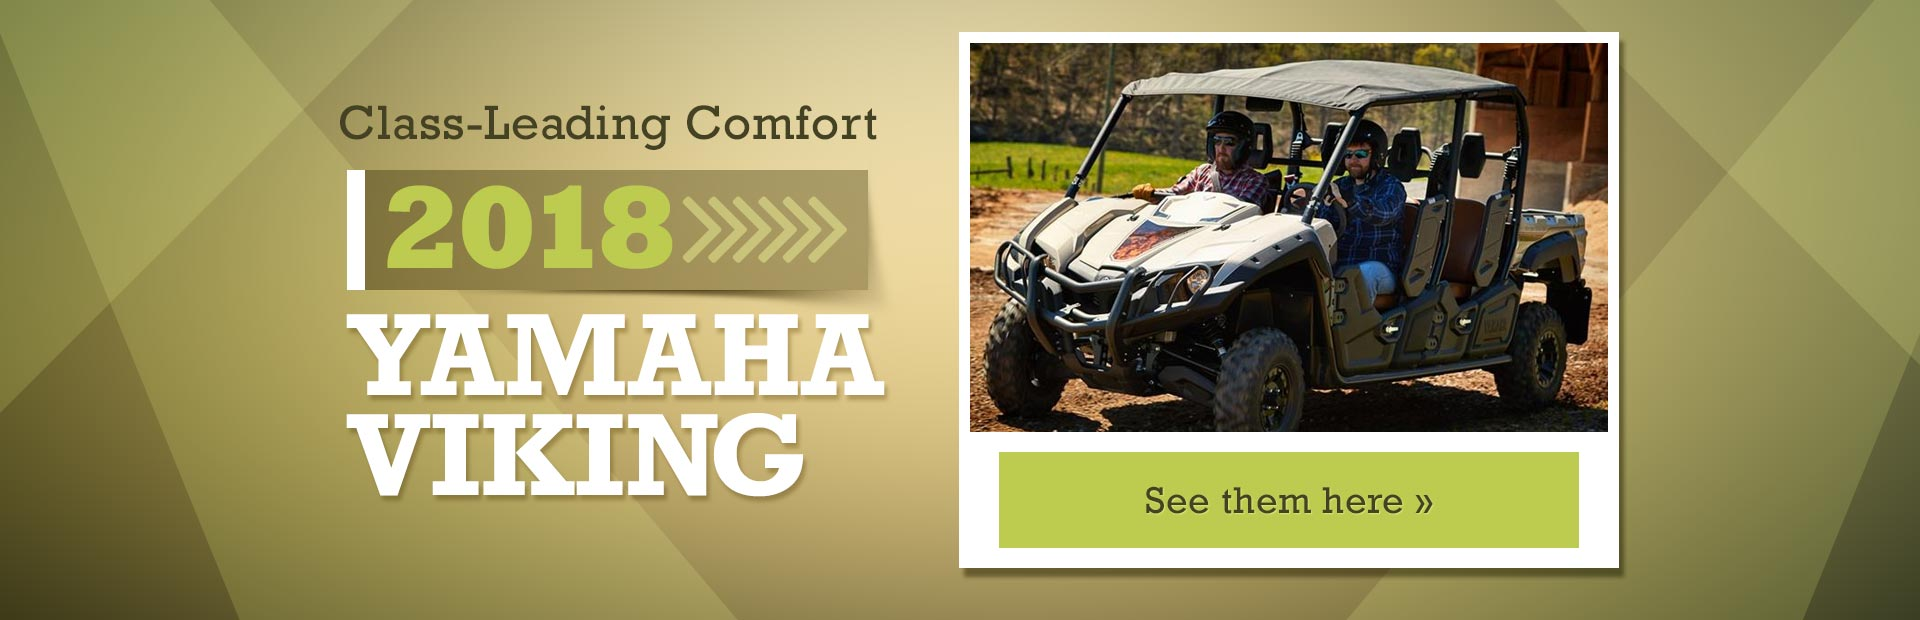 2018 Yamaha Viking Side x Sides: Click here to view the models.